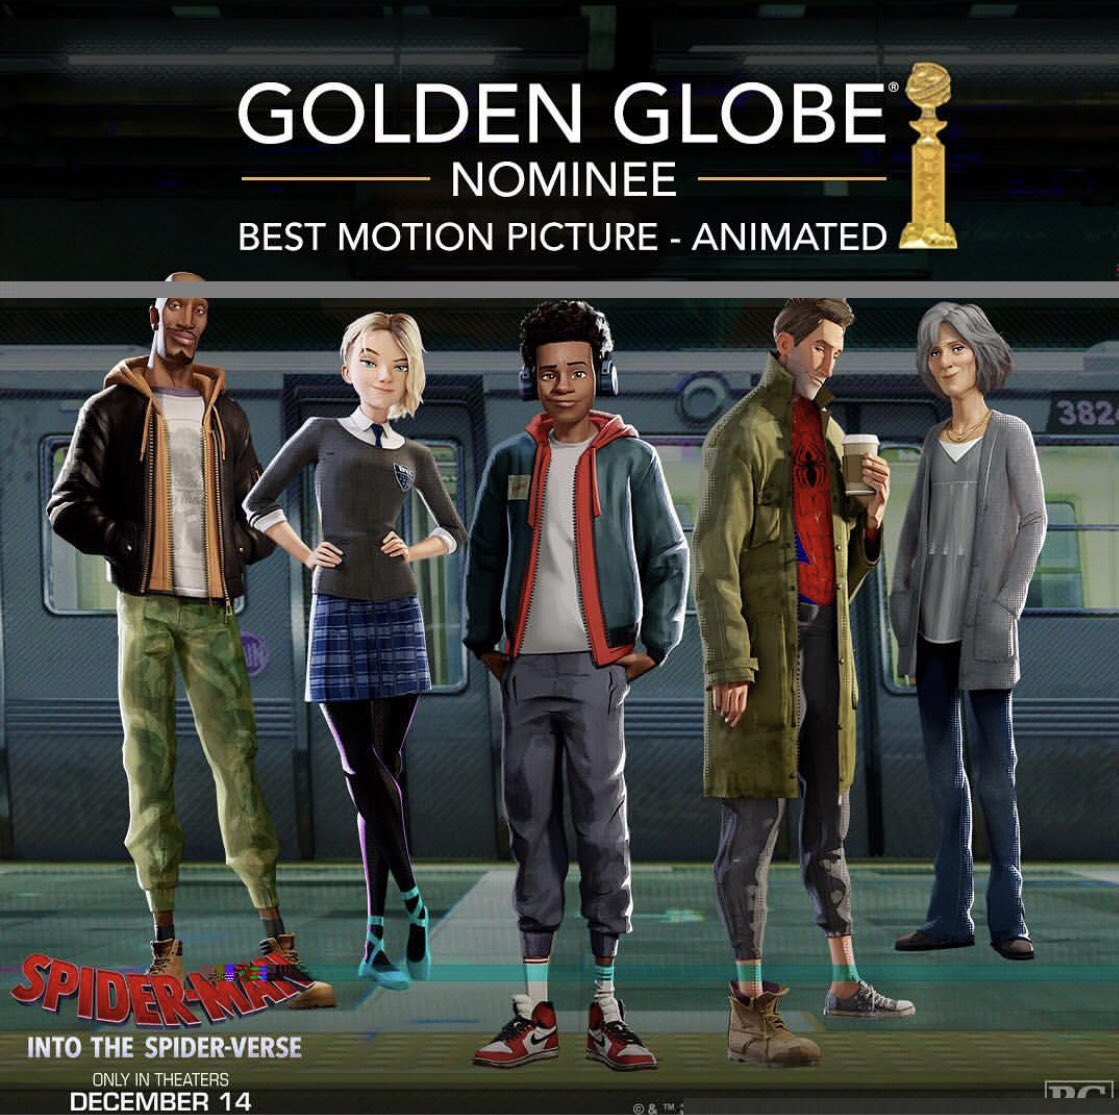 Thank you to the members of the Hollywood Foreign Press for recognizing this story that I am so grateful, proud and honored to be a part of!!  #SpiderVerse  #SpiderGwen  @SpiderVerse @goldenglobes<br>http://pic.twitter.com/YS31RIRijq